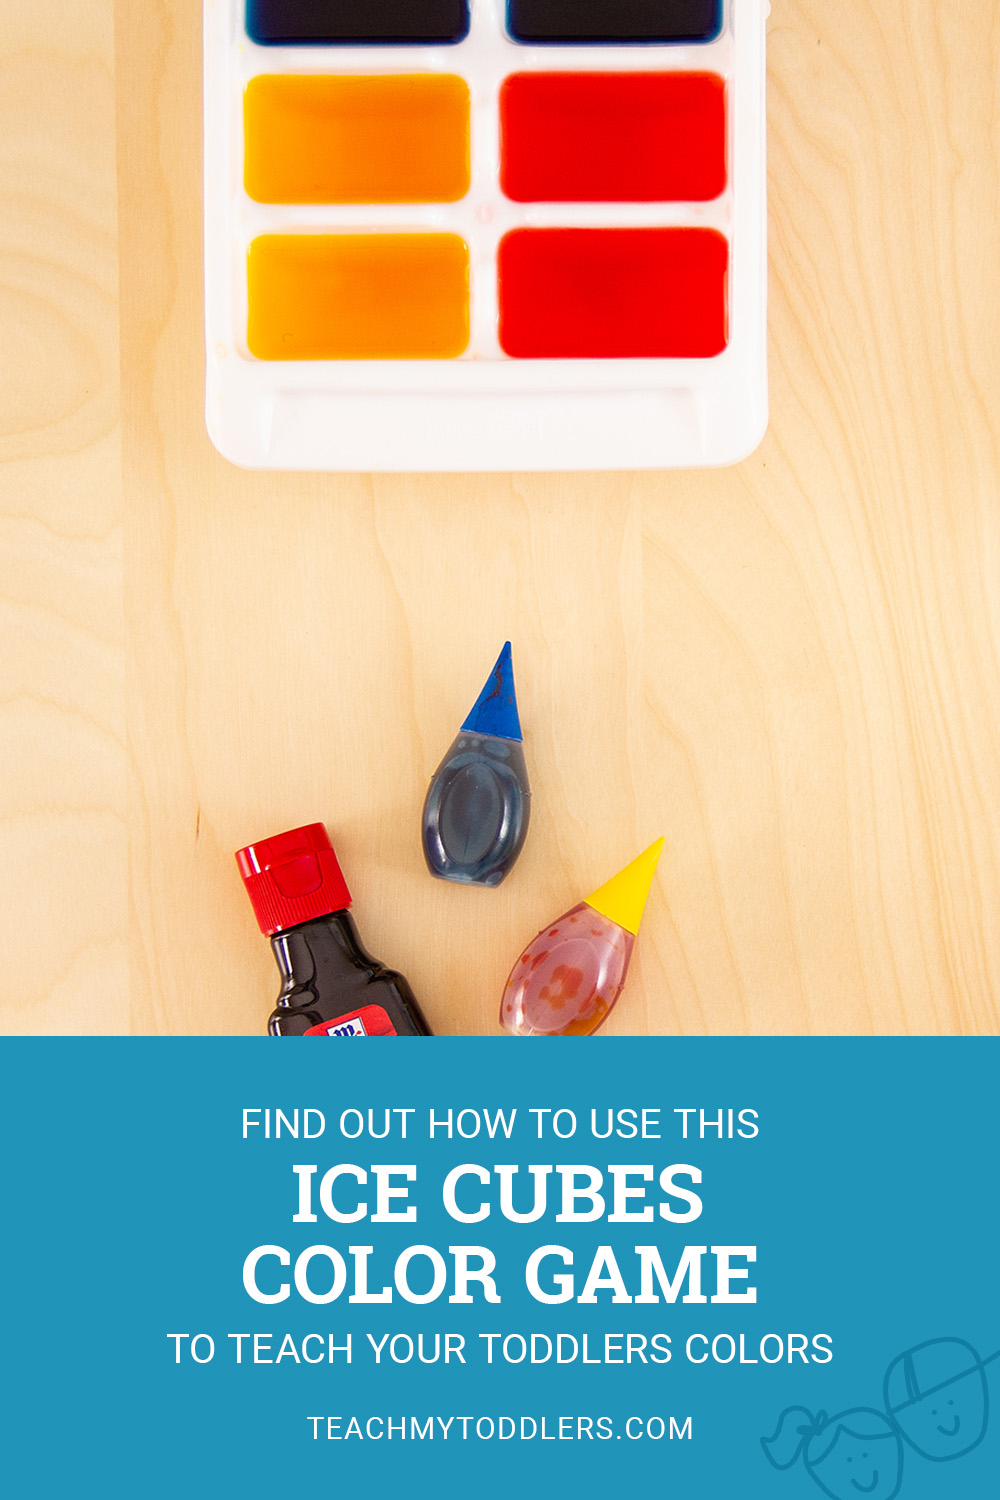 This fun ice cube game is great to teach how to mix primary colors to make secondary colors.jpg